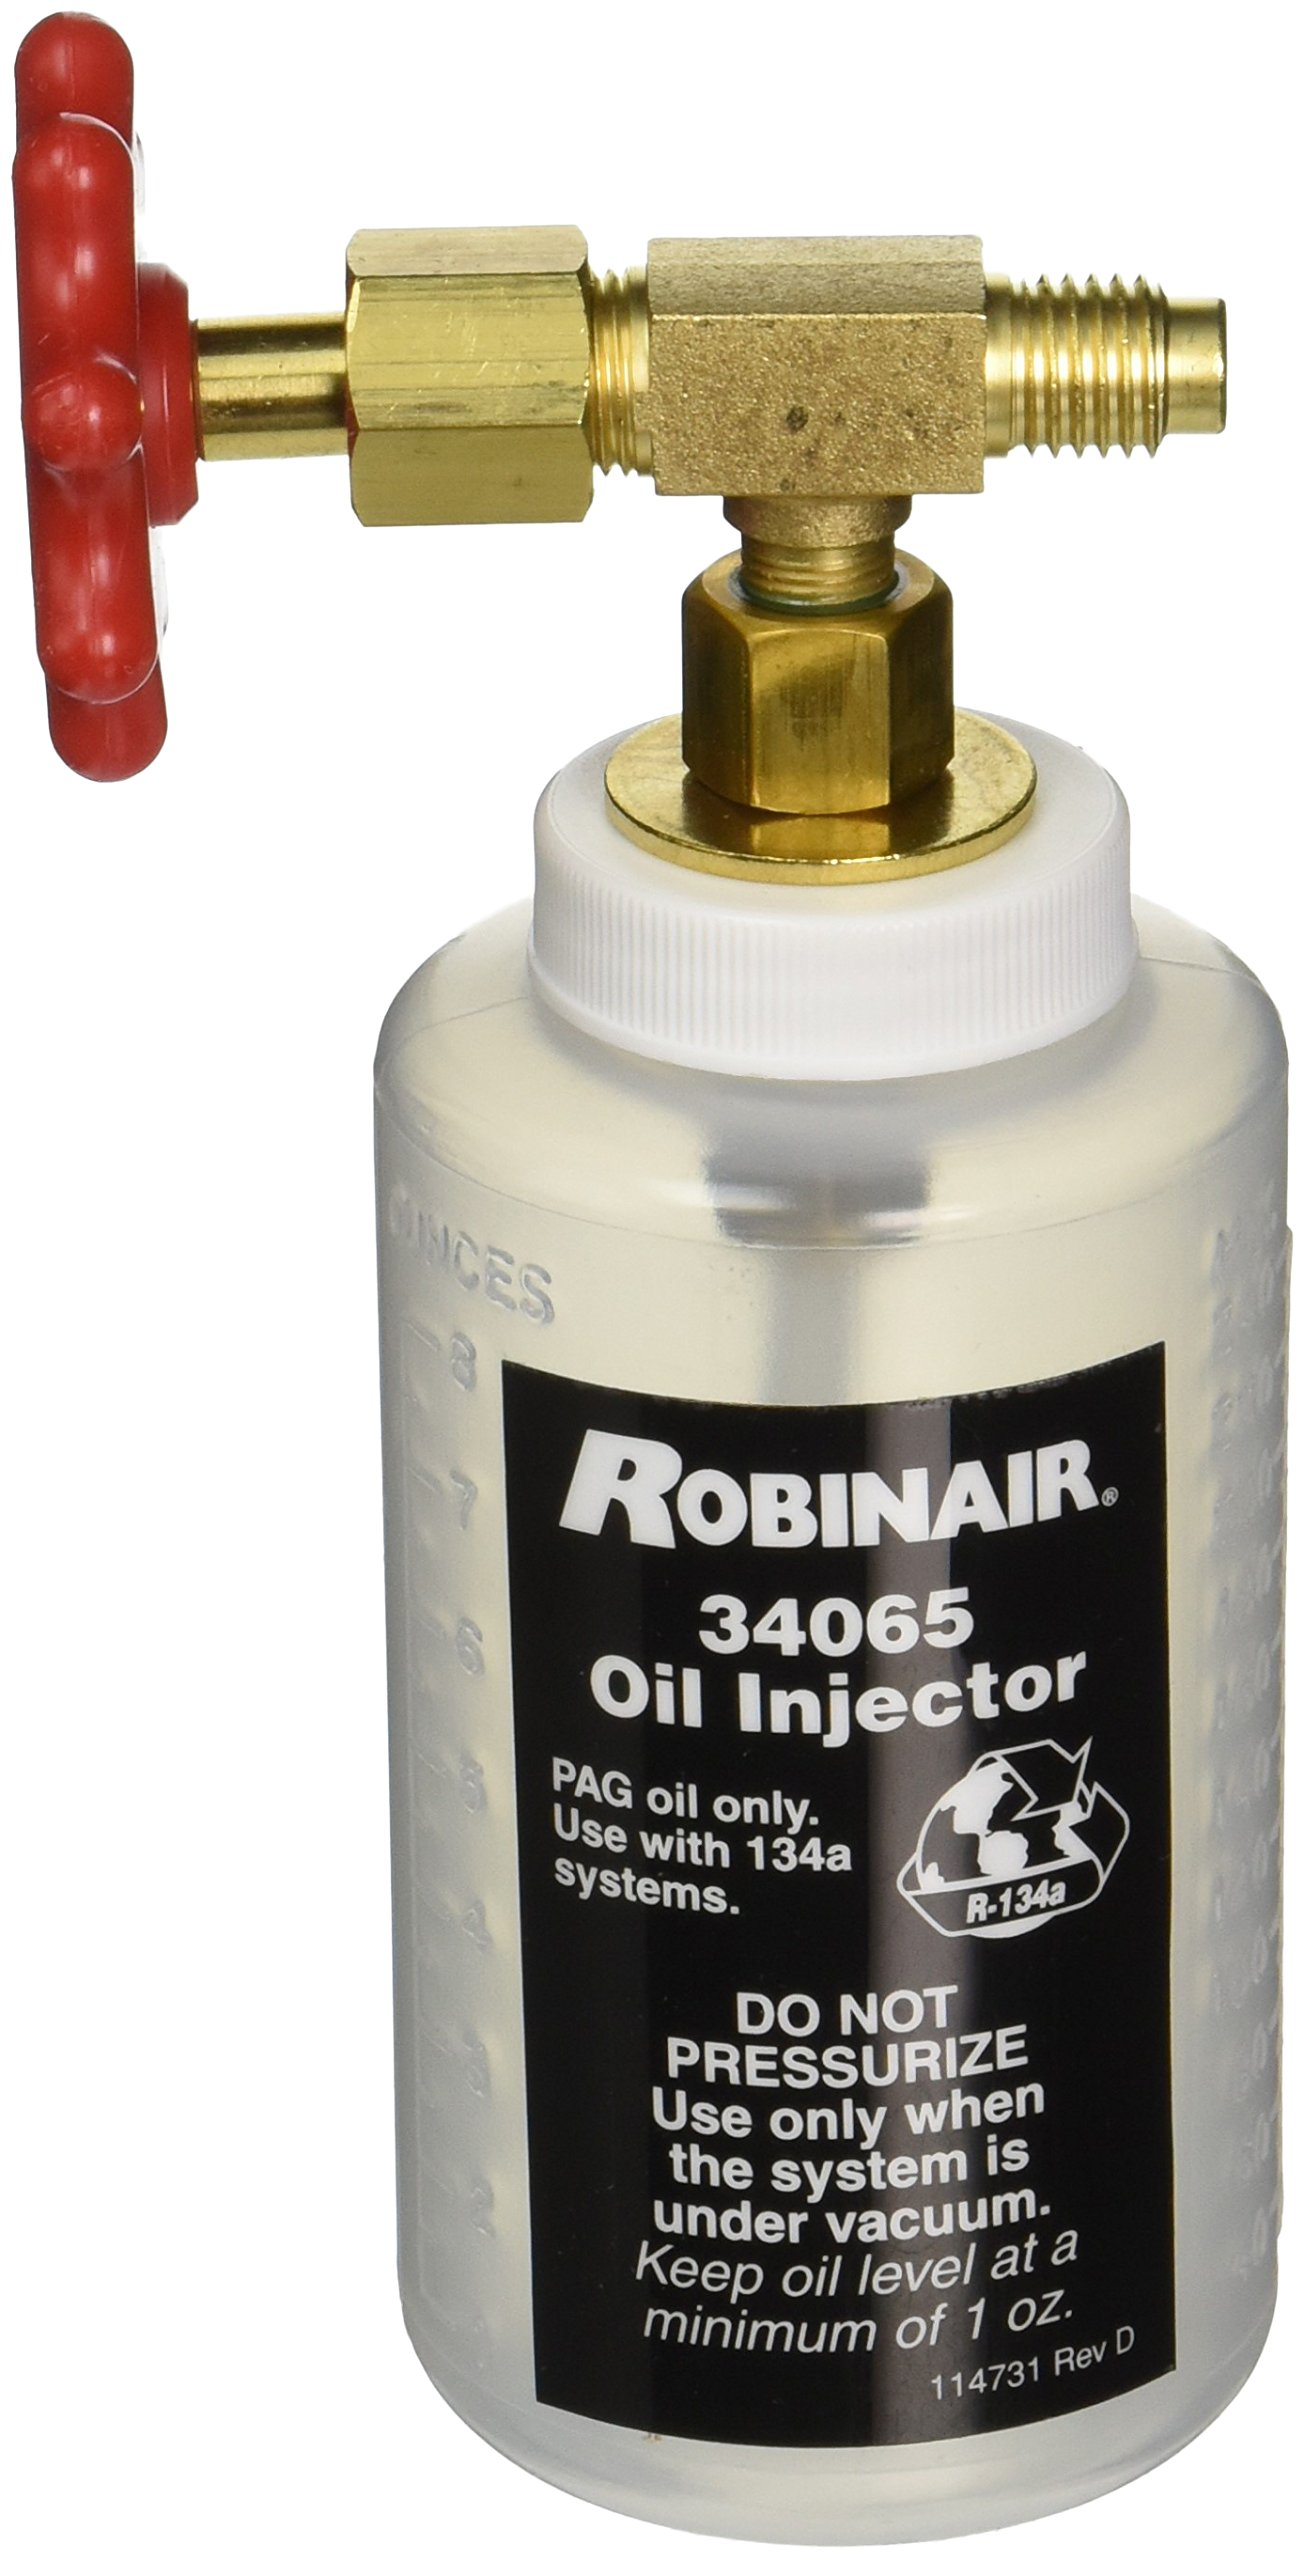 Robinair 34065 R-134a Oil Injector with 1/2'' Acme Fitting